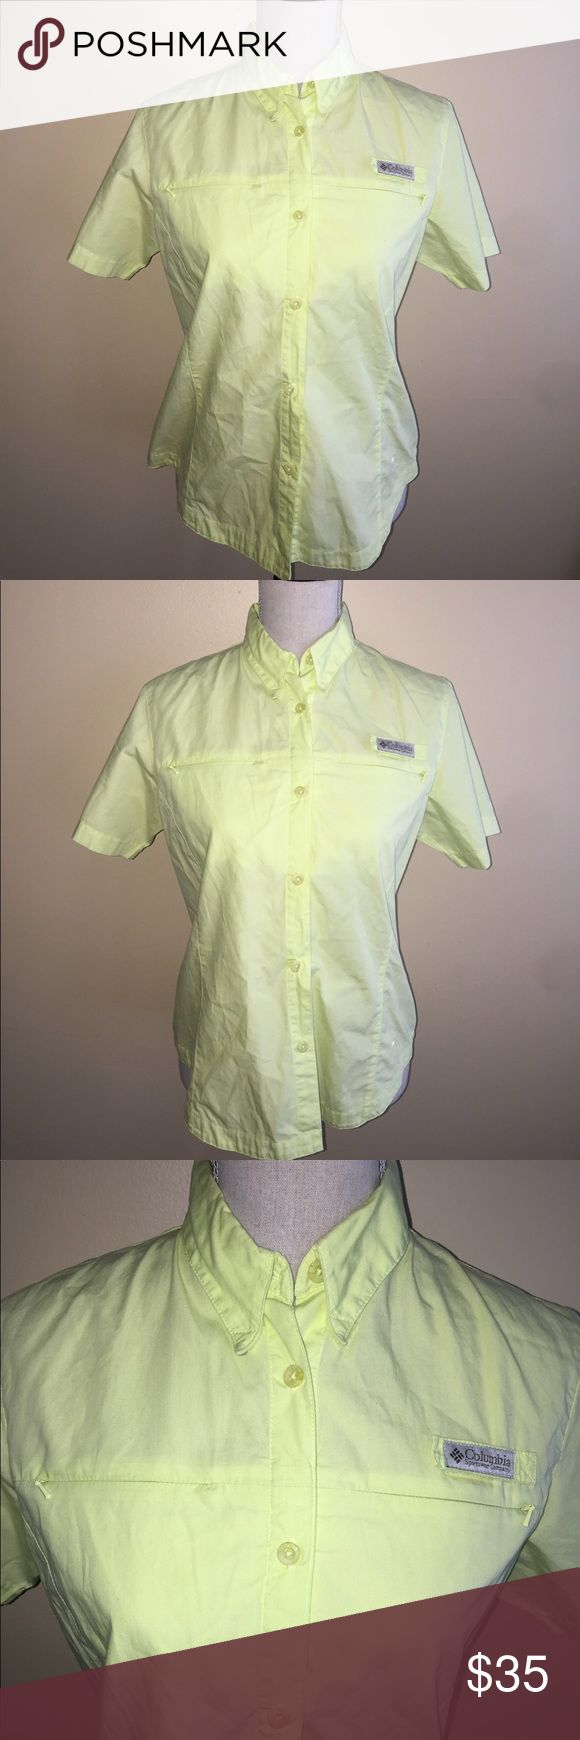 Columbia Sportswear Button Down Size Small Lime green button down with two front pockets on breast. Size Small. 100% cotton.🎈Make an offer 🎈accepts most offers Columbia Tops Button Down Shirts